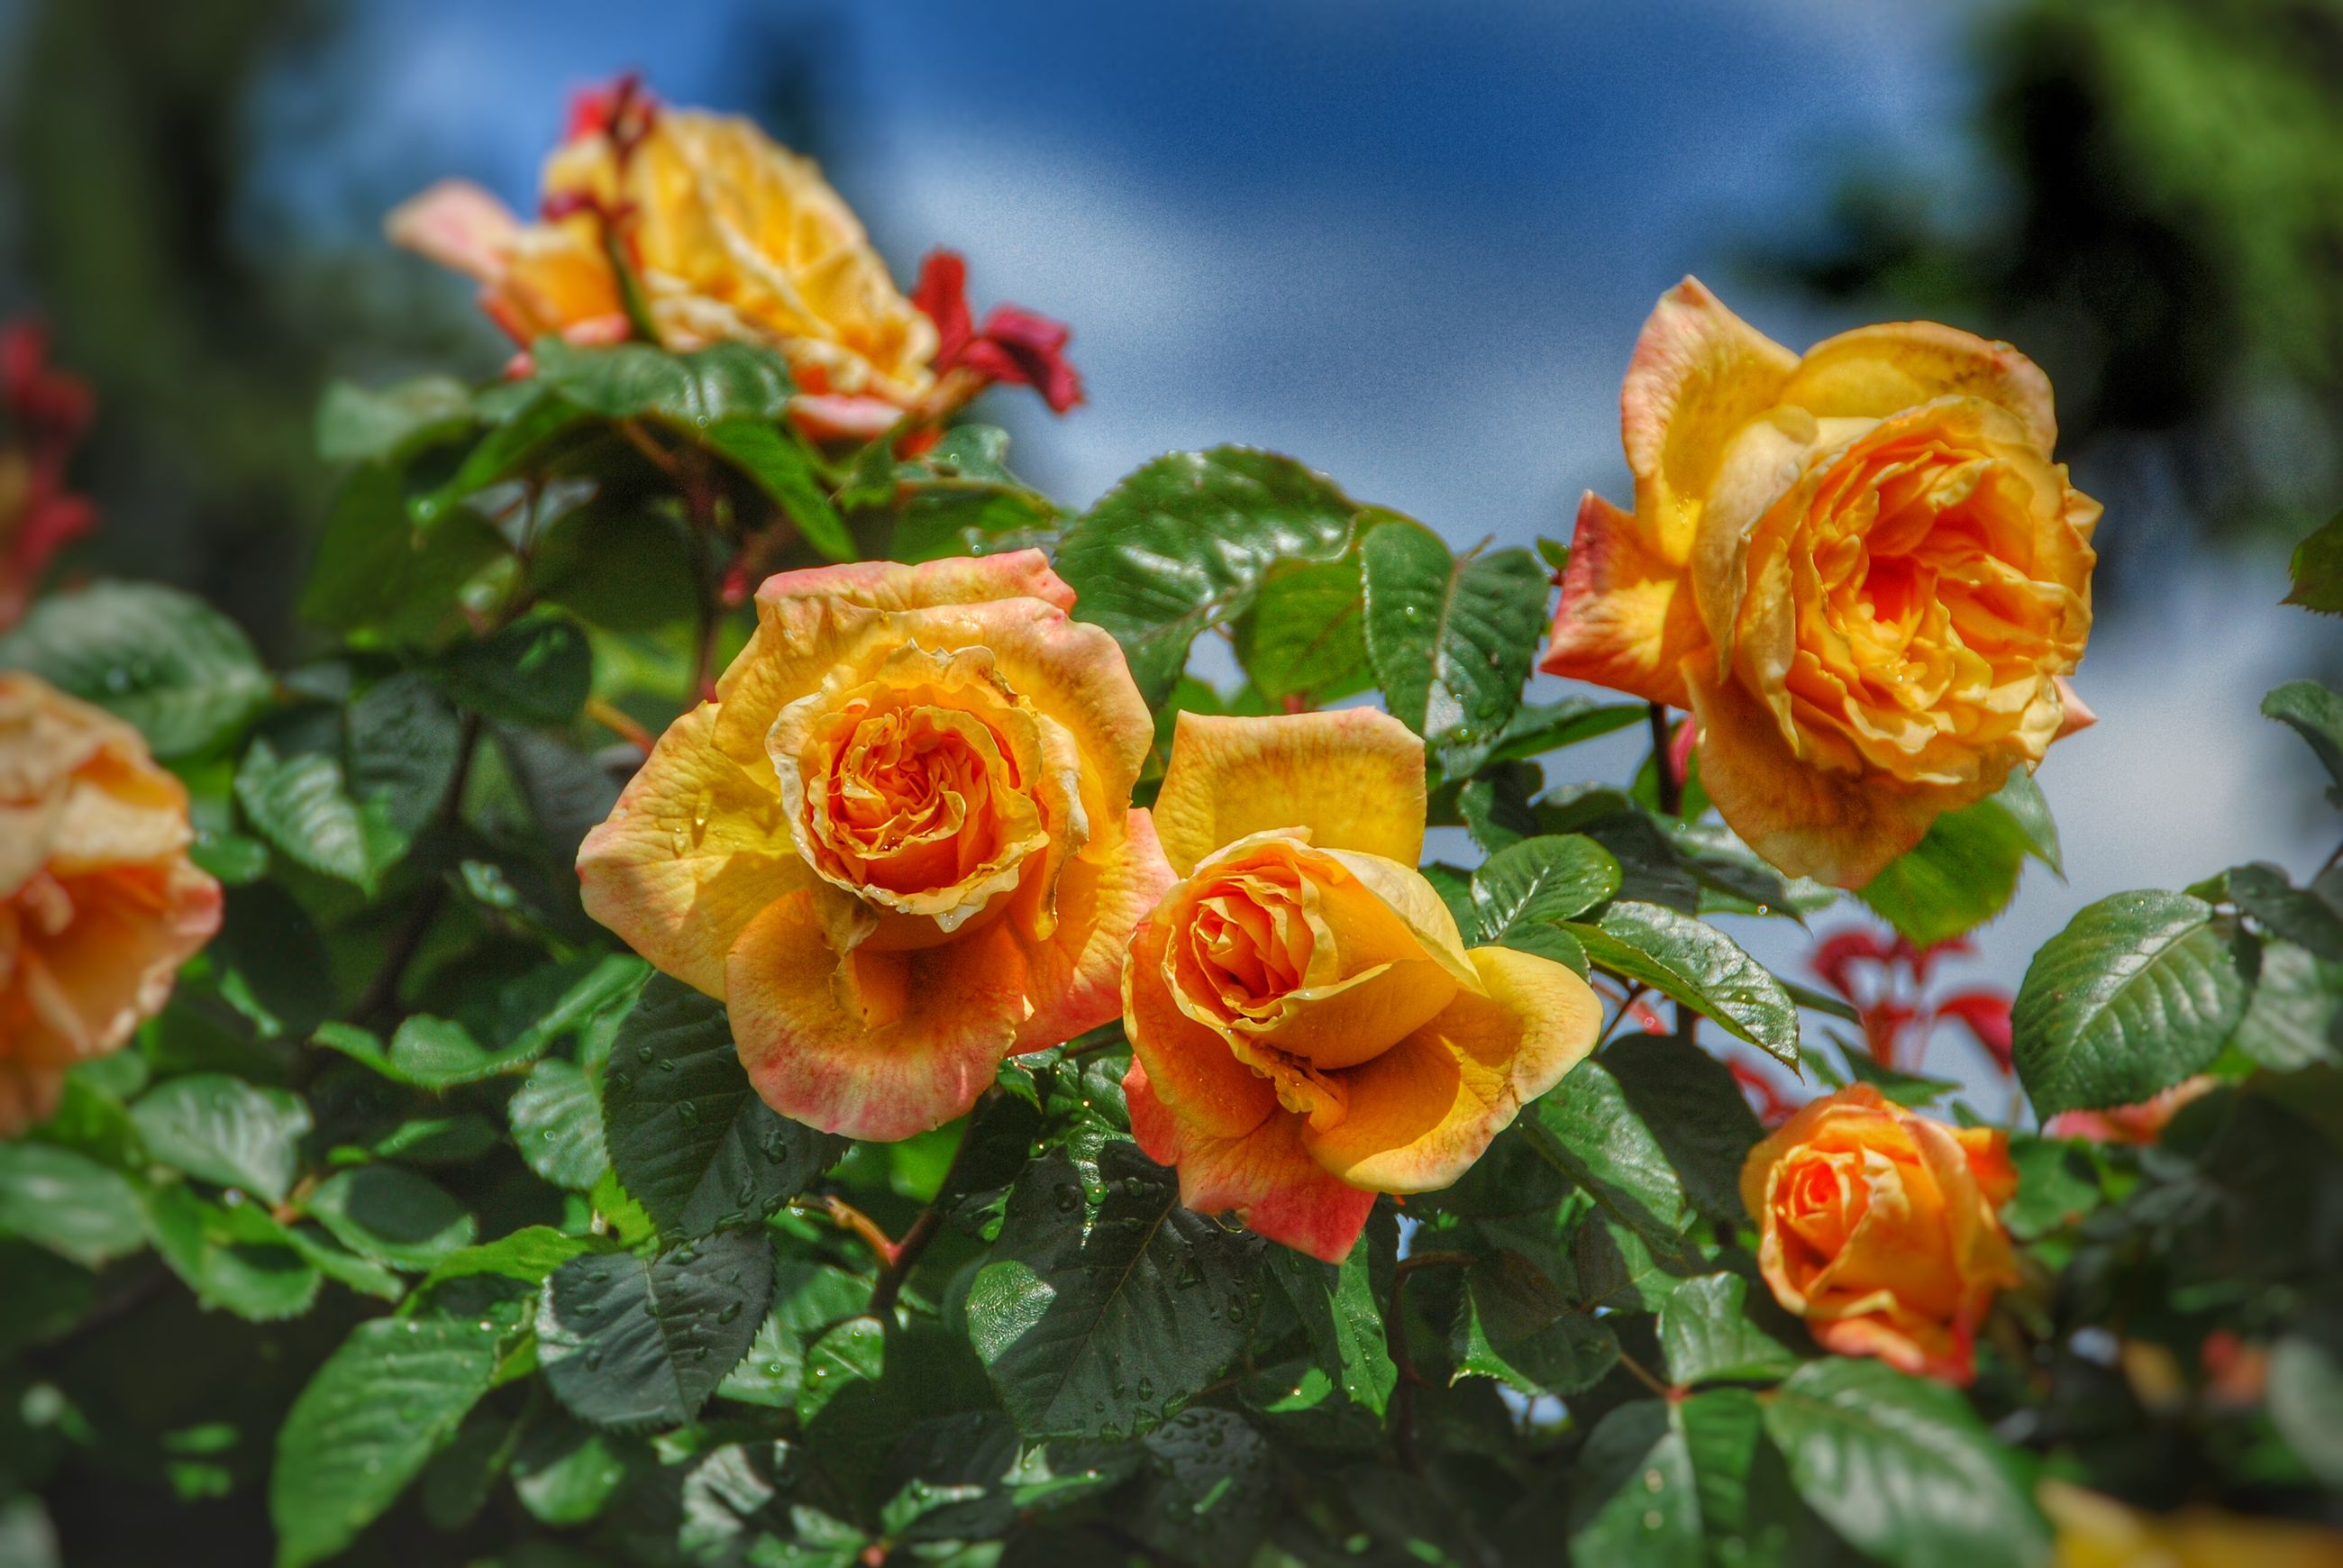 flower, petal, freshness, flower head, fragility, beauty in nature, growth, yellow, blooming, close-up, rose - flower, plant, focus on foreground, nature, orange color, in bloom, leaf, park - man made space, outdoors, day